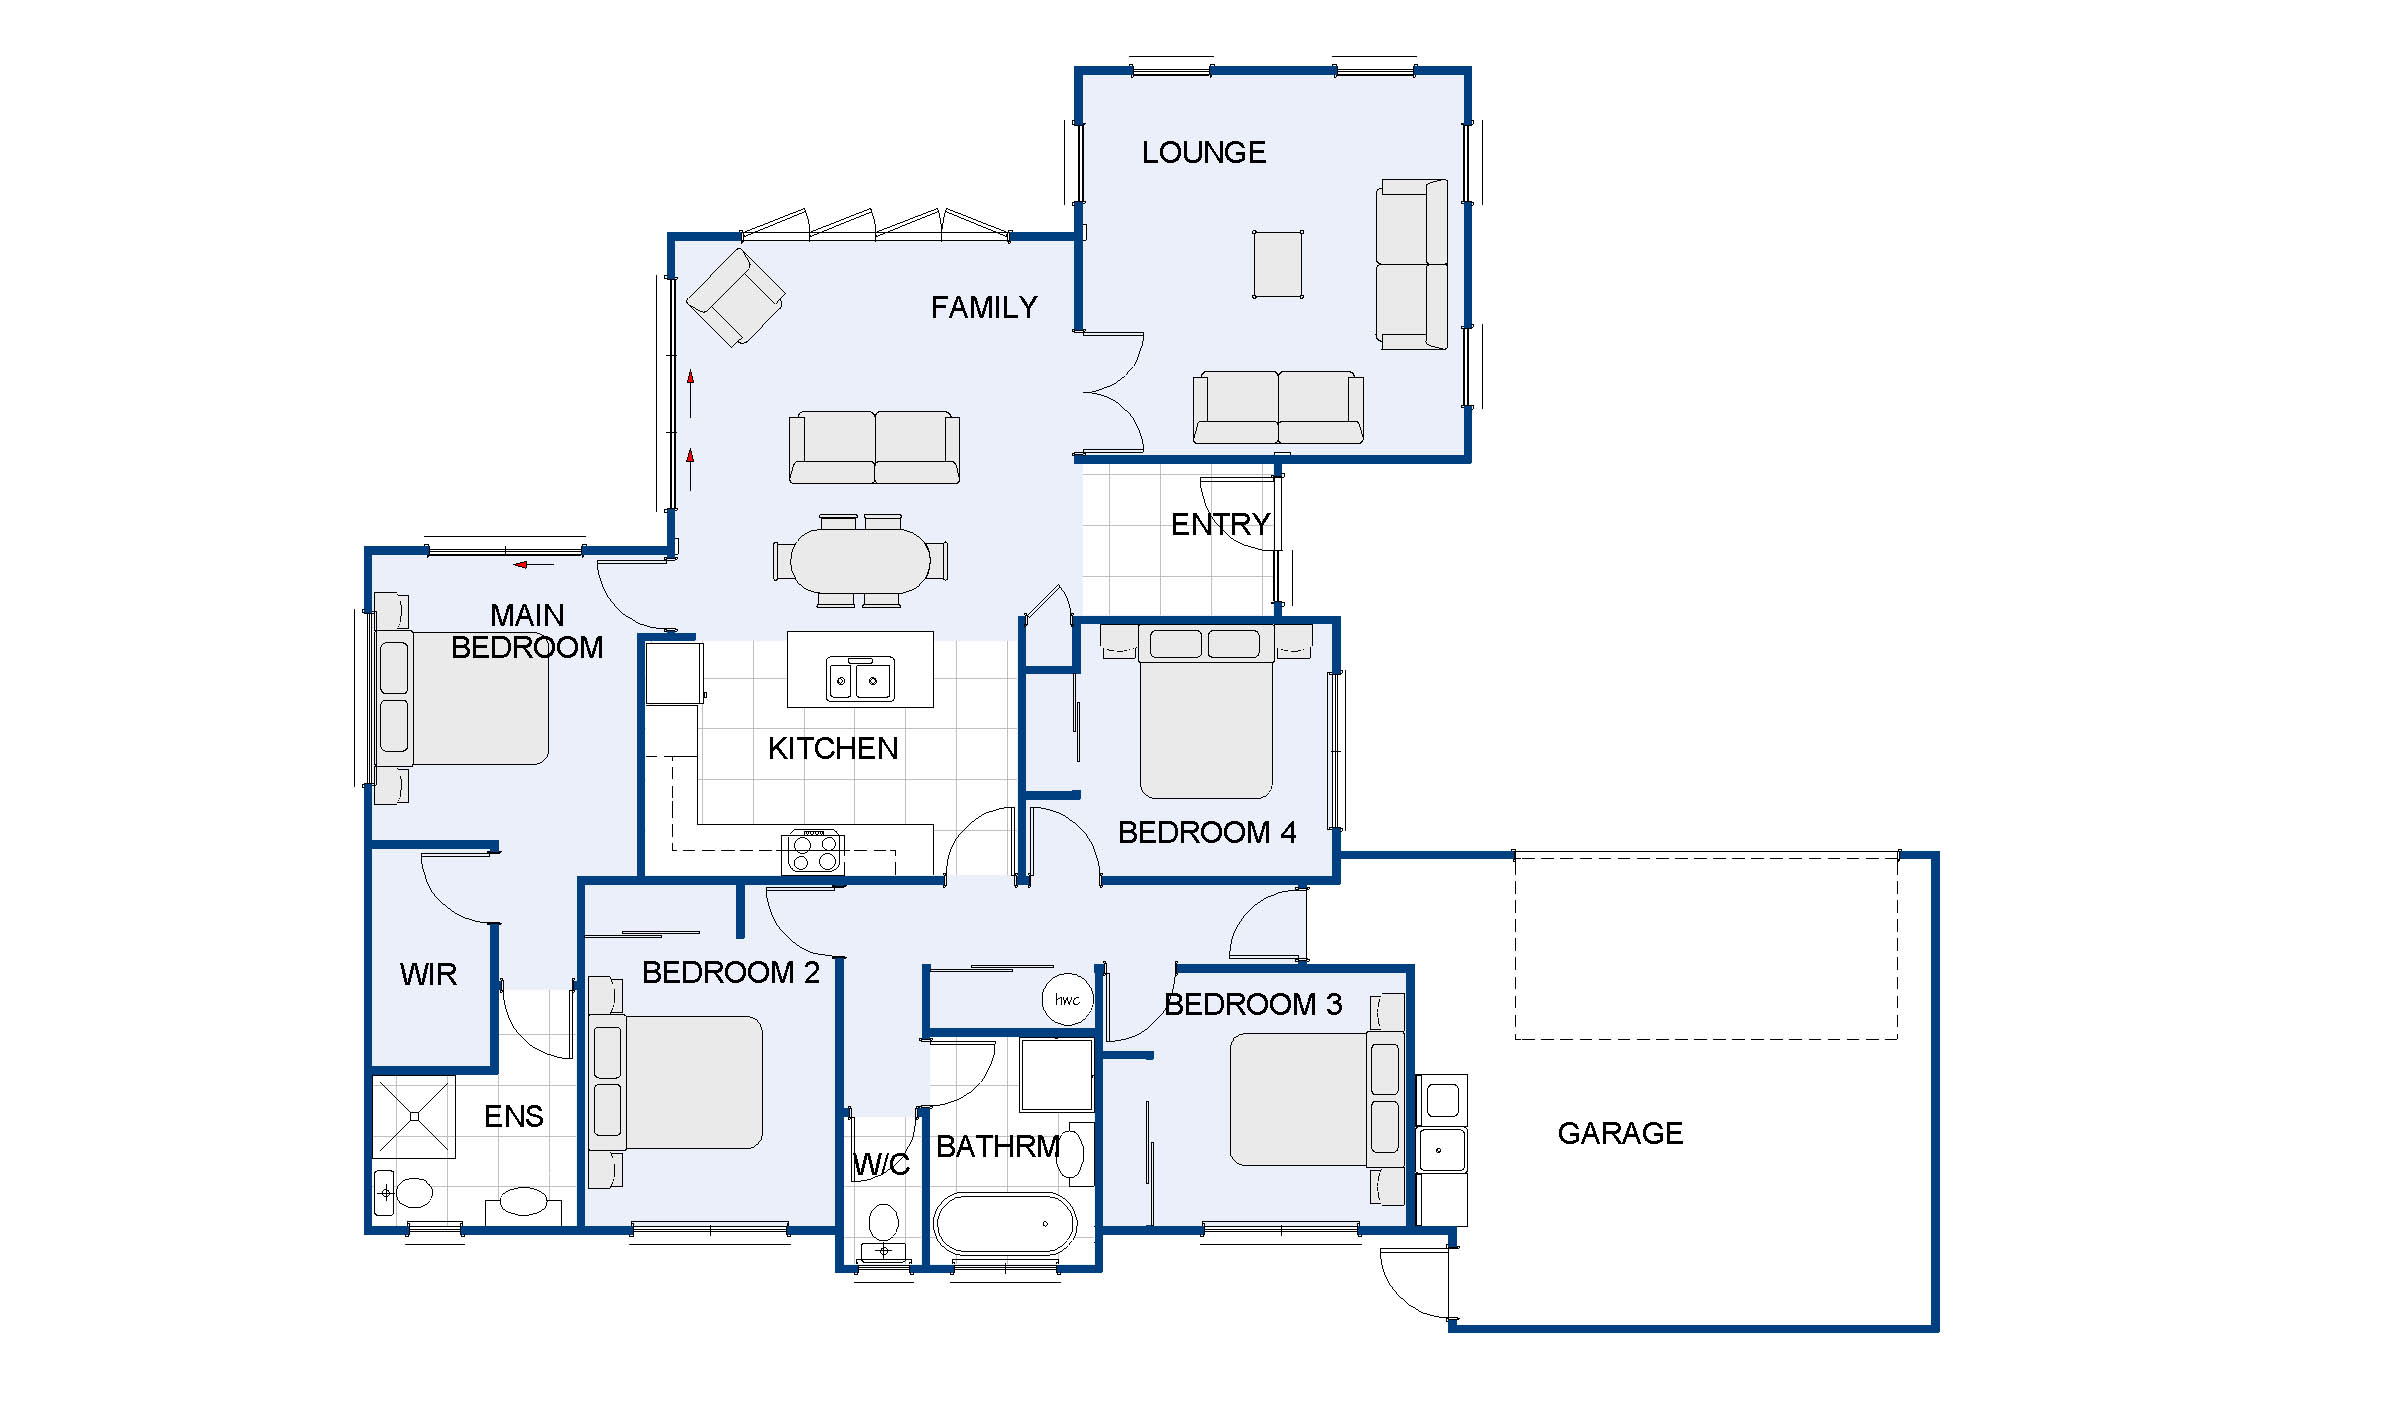 Piha new house plan and design urban house plans manawatu for New urbanism house plans